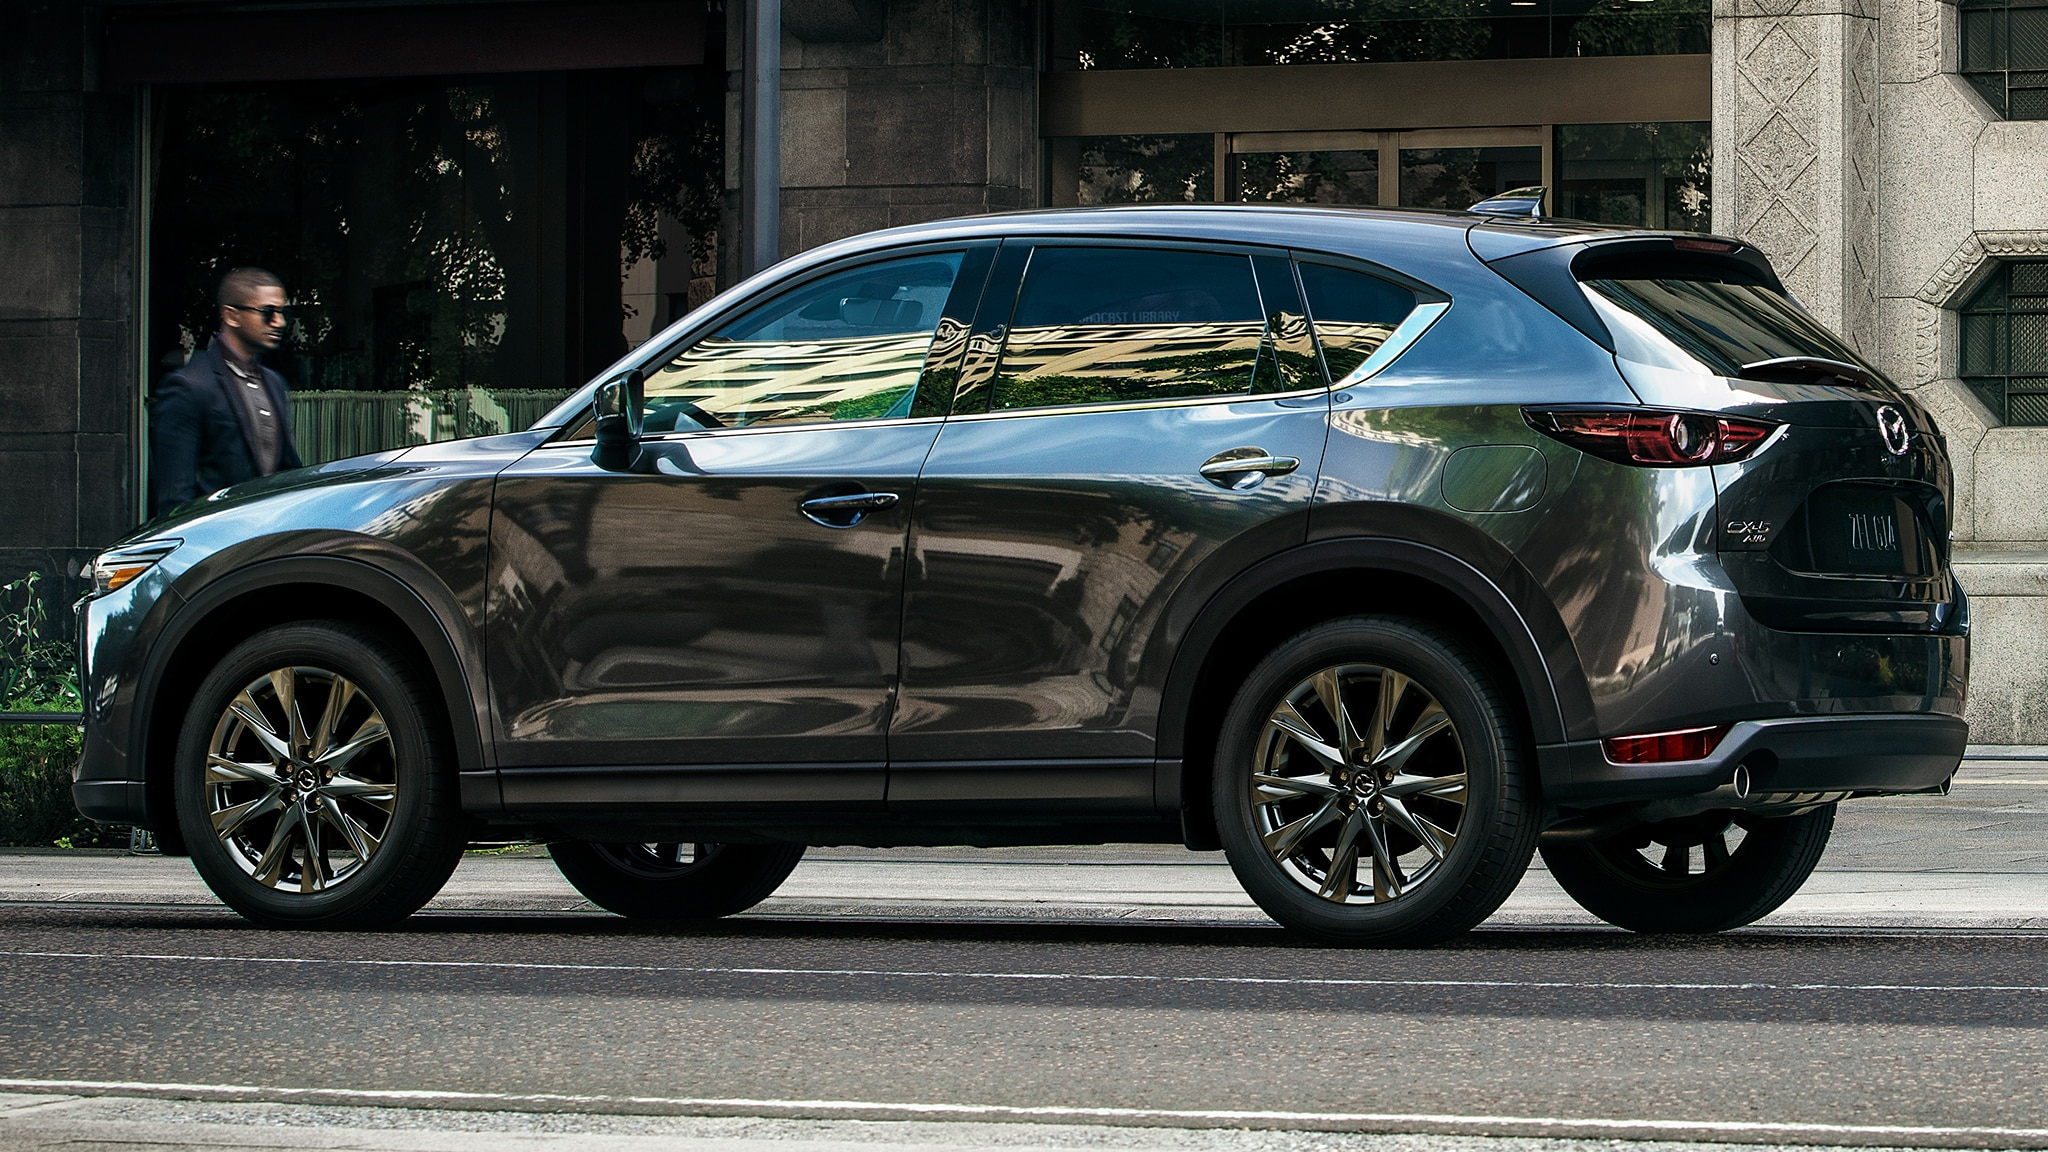 2019 mazda cx 5 confirmed with turbo engine signature. Black Bedroom Furniture Sets. Home Design Ideas